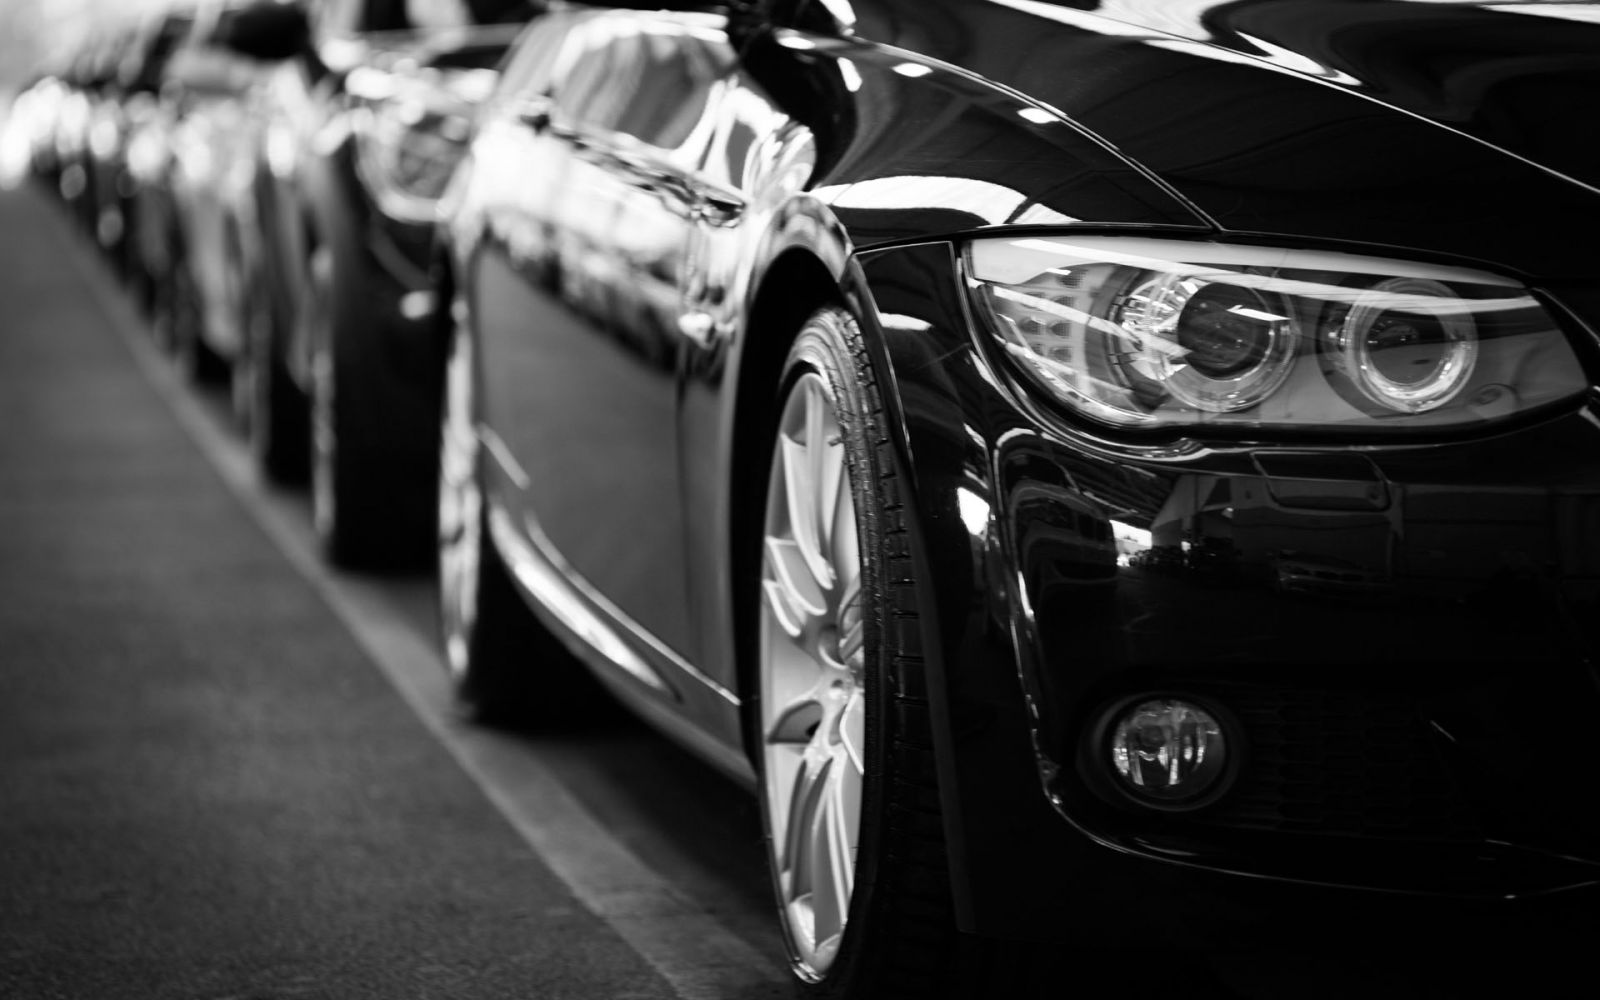 Turkey's Auto Exports Rise 6% to $10.3B in 4 Months